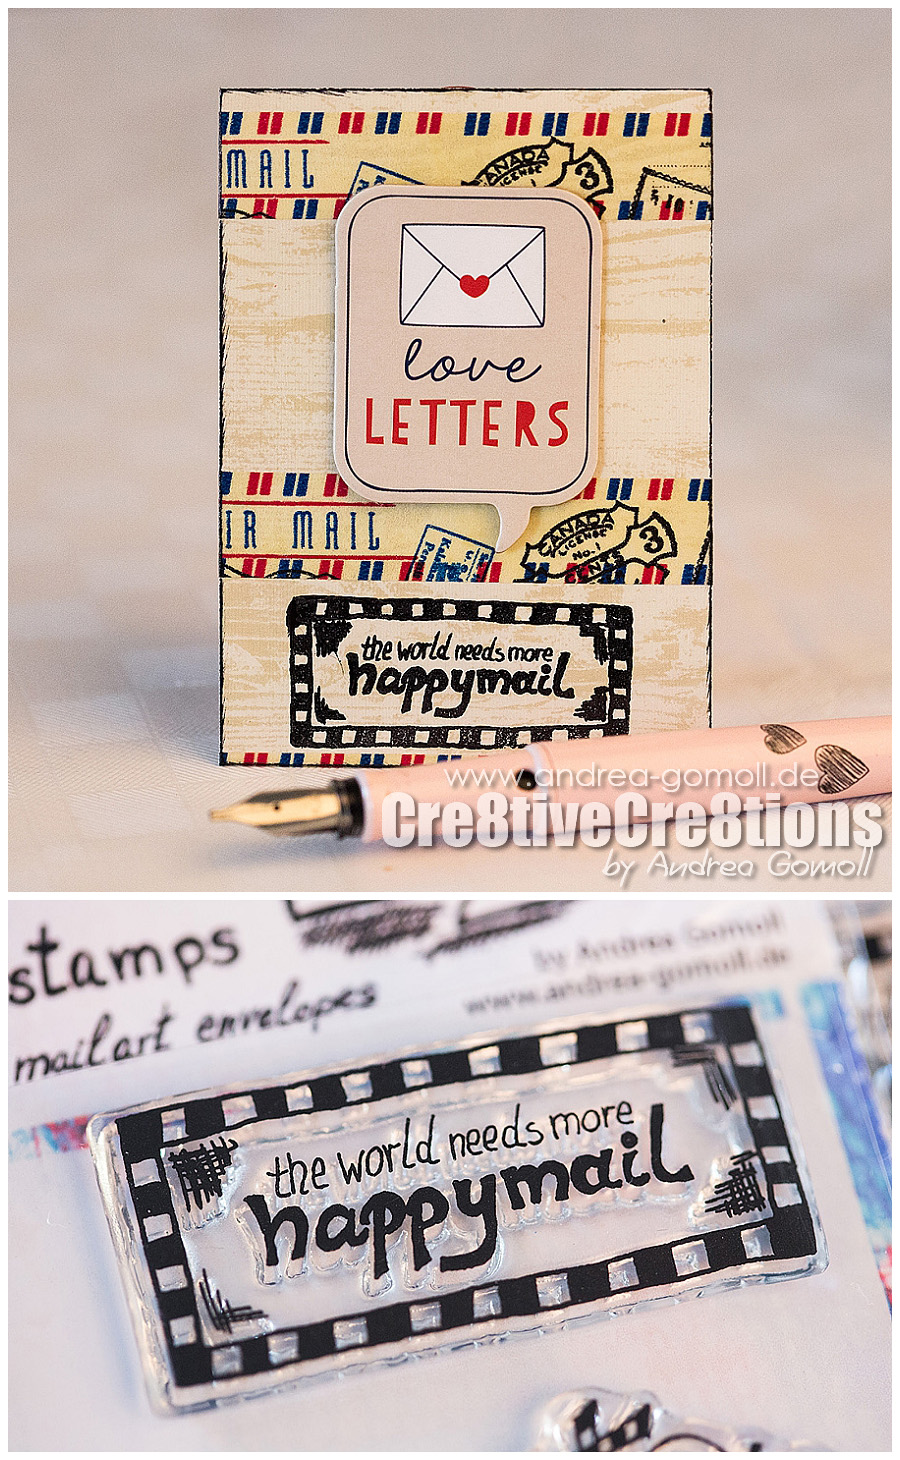 snaimail-happymail-mailart-stamps-cre8tivecre8tions-andrea-gomoll1